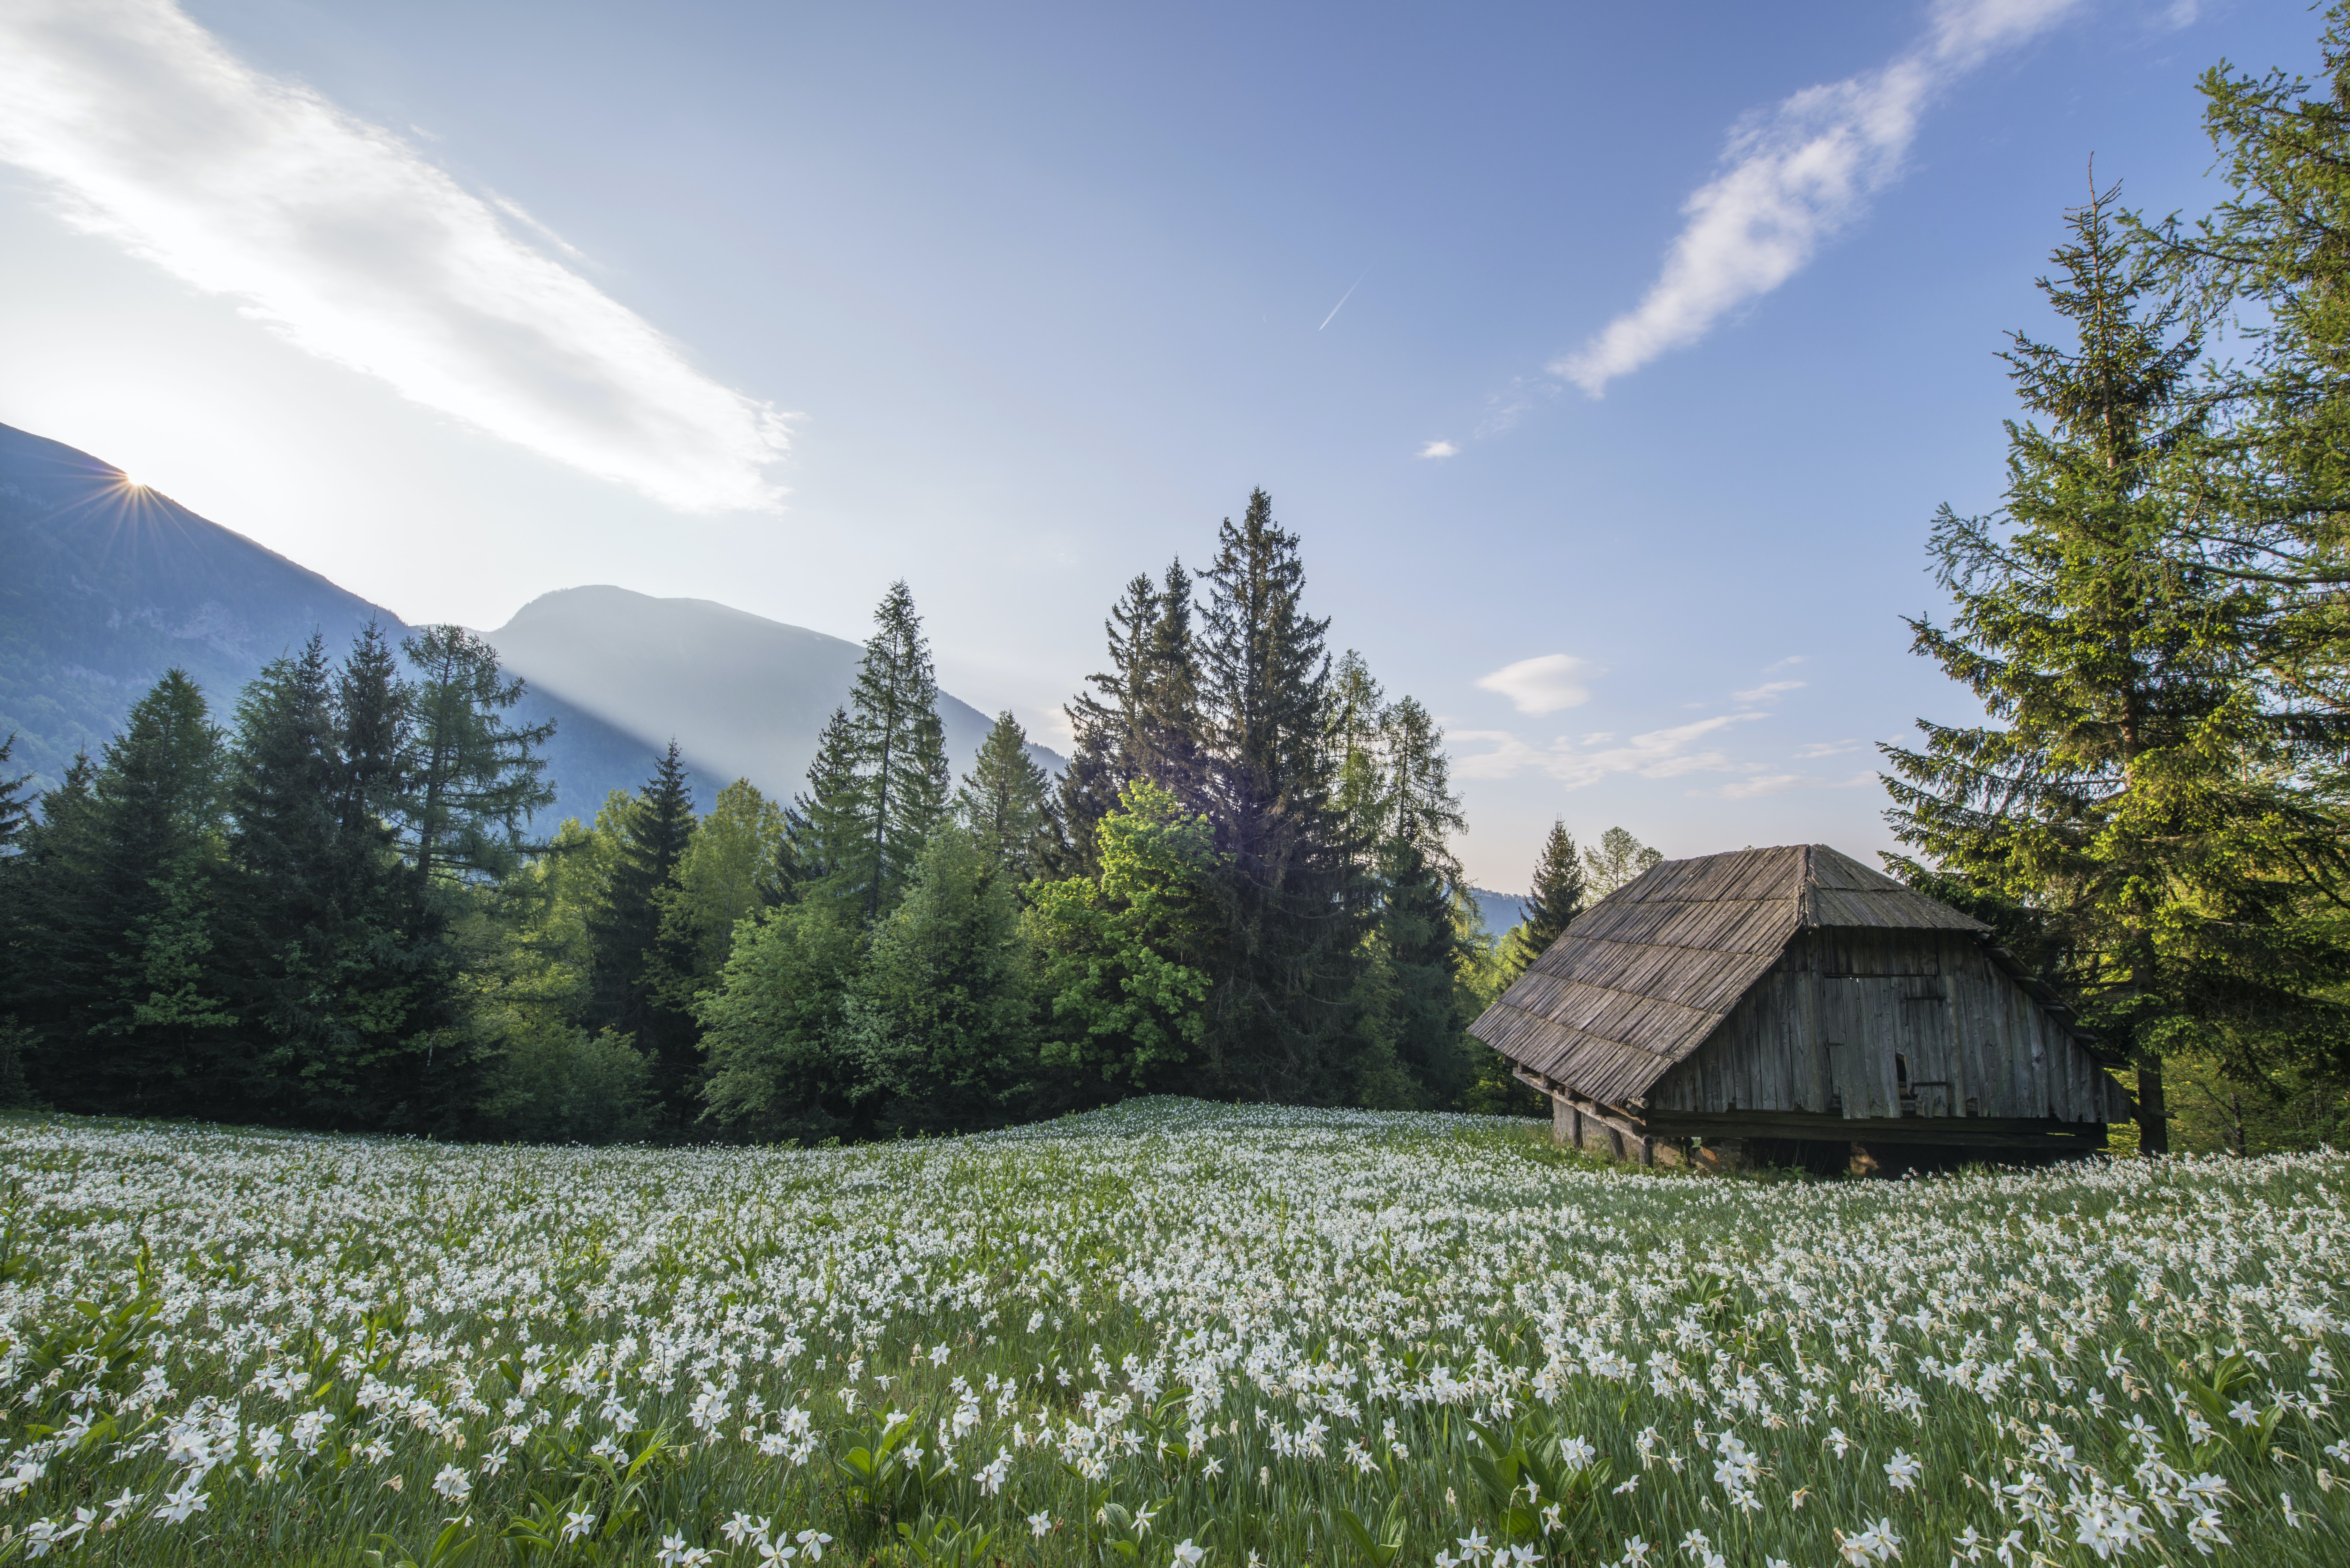 A chalet under pine trees at the edge of a meadow covered with white flowers